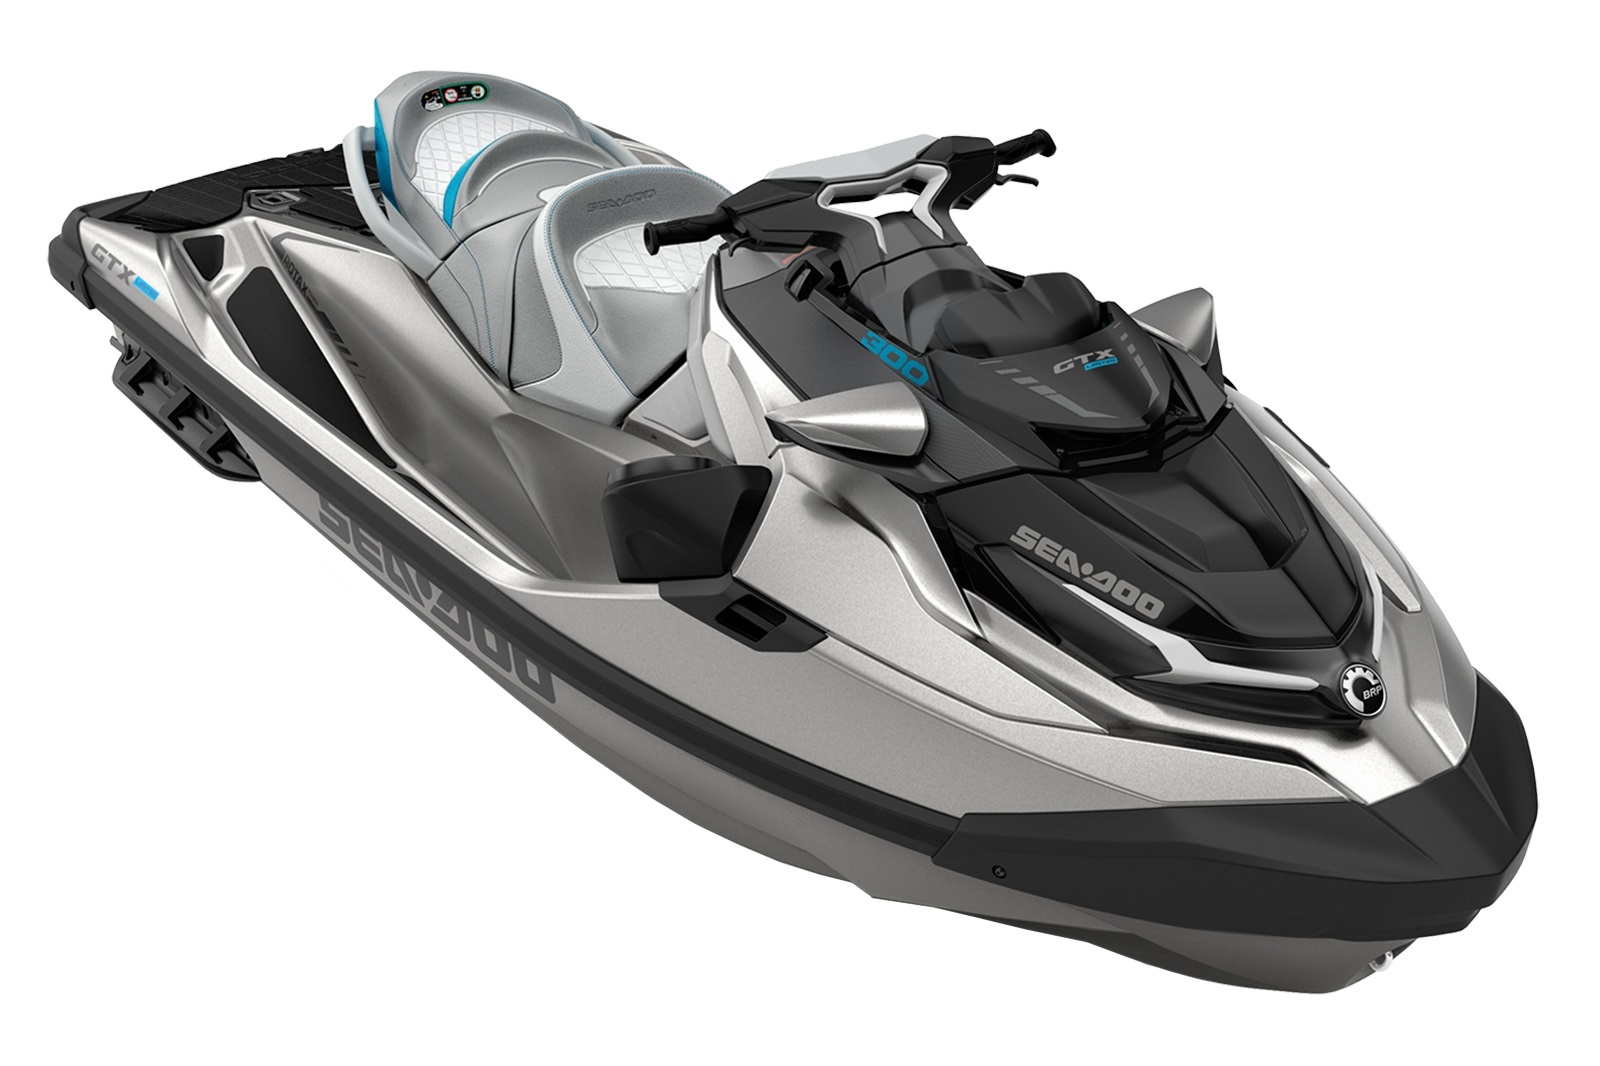 Sea Doo GTX LTD 3-up 300hp šedá metalíza